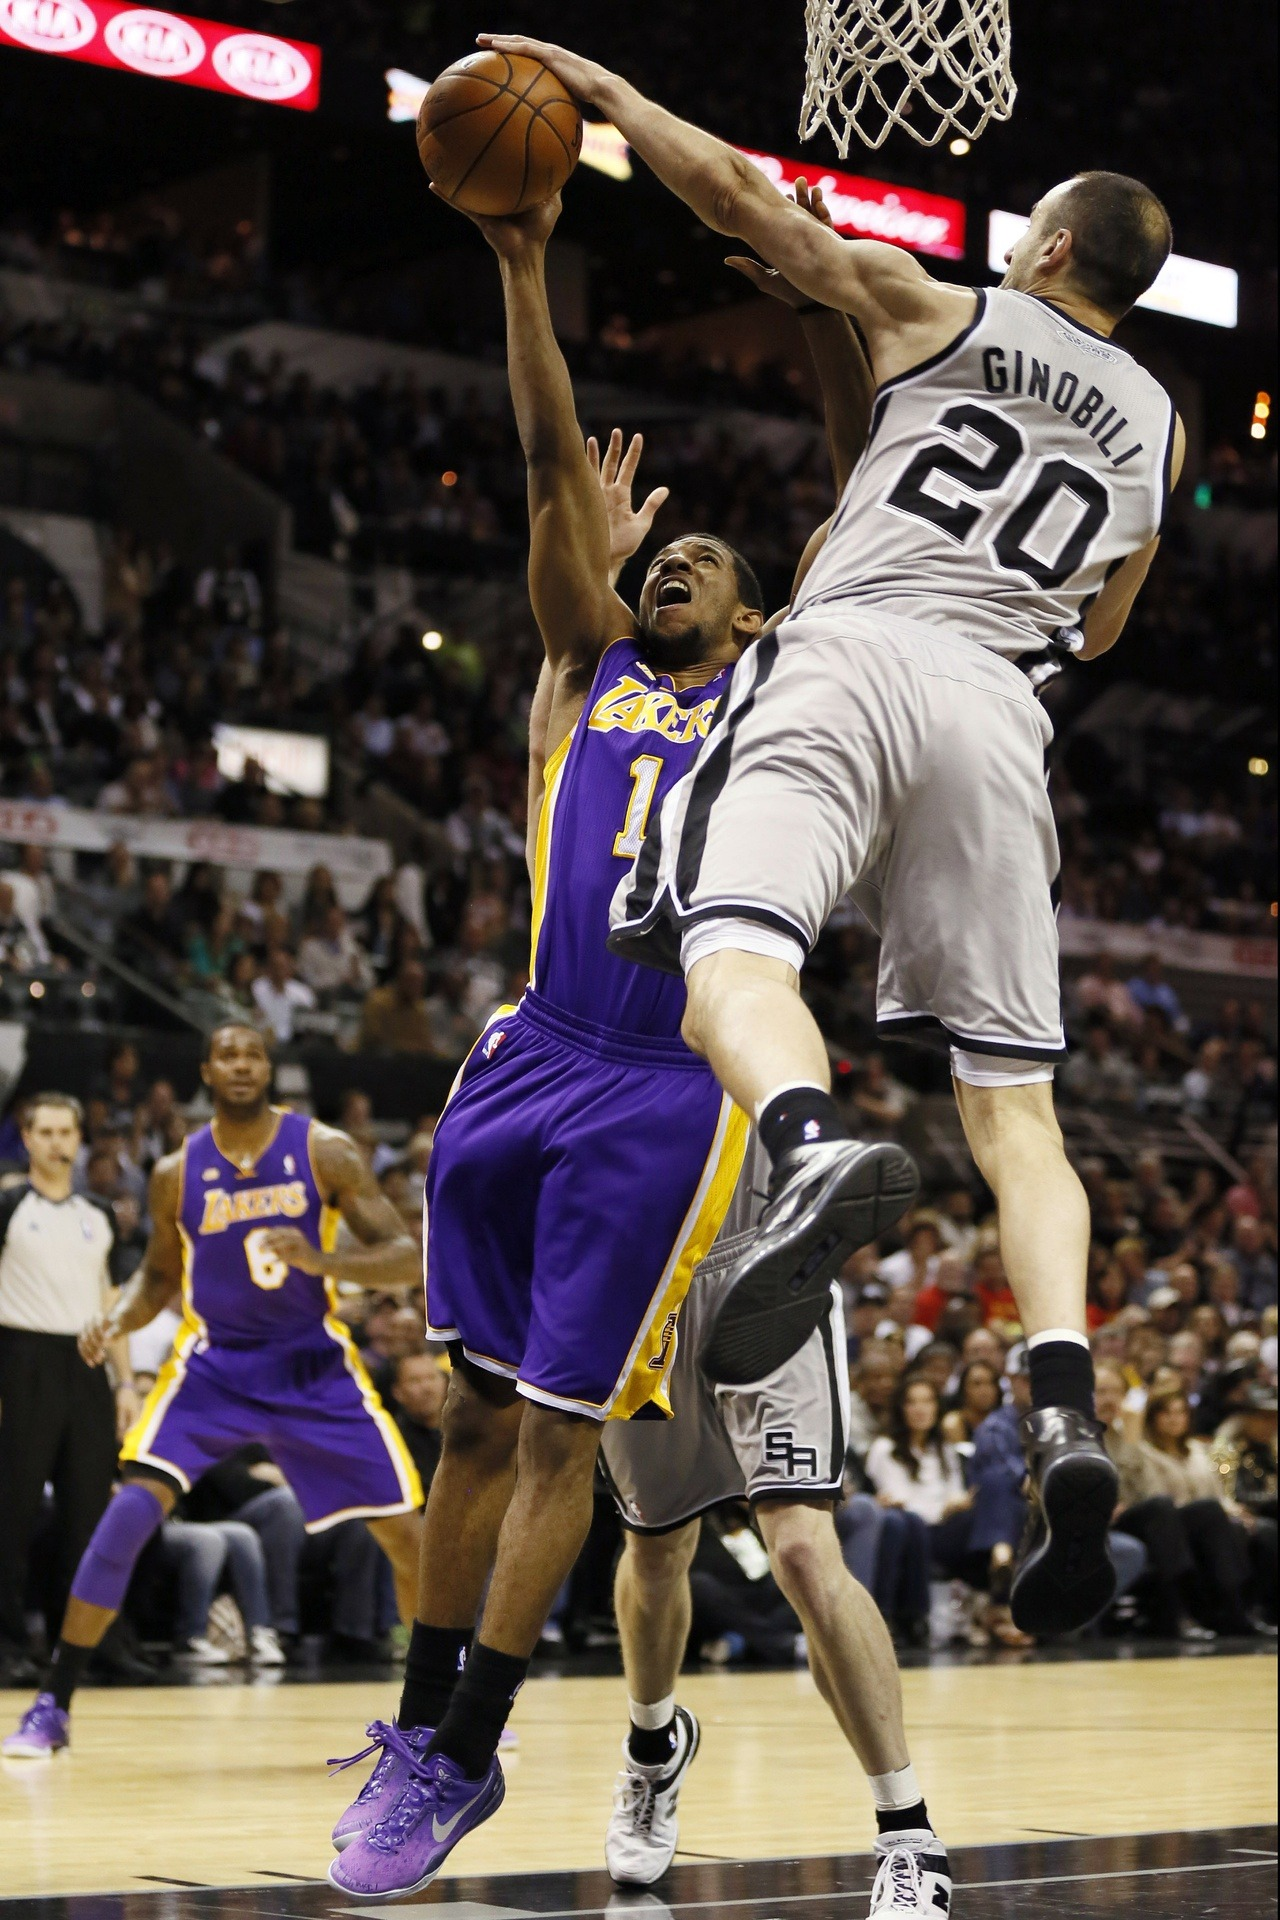 Game 2: Spurs 102, Lakers 91 BUY or SELL the Lakers winning a game in this series?